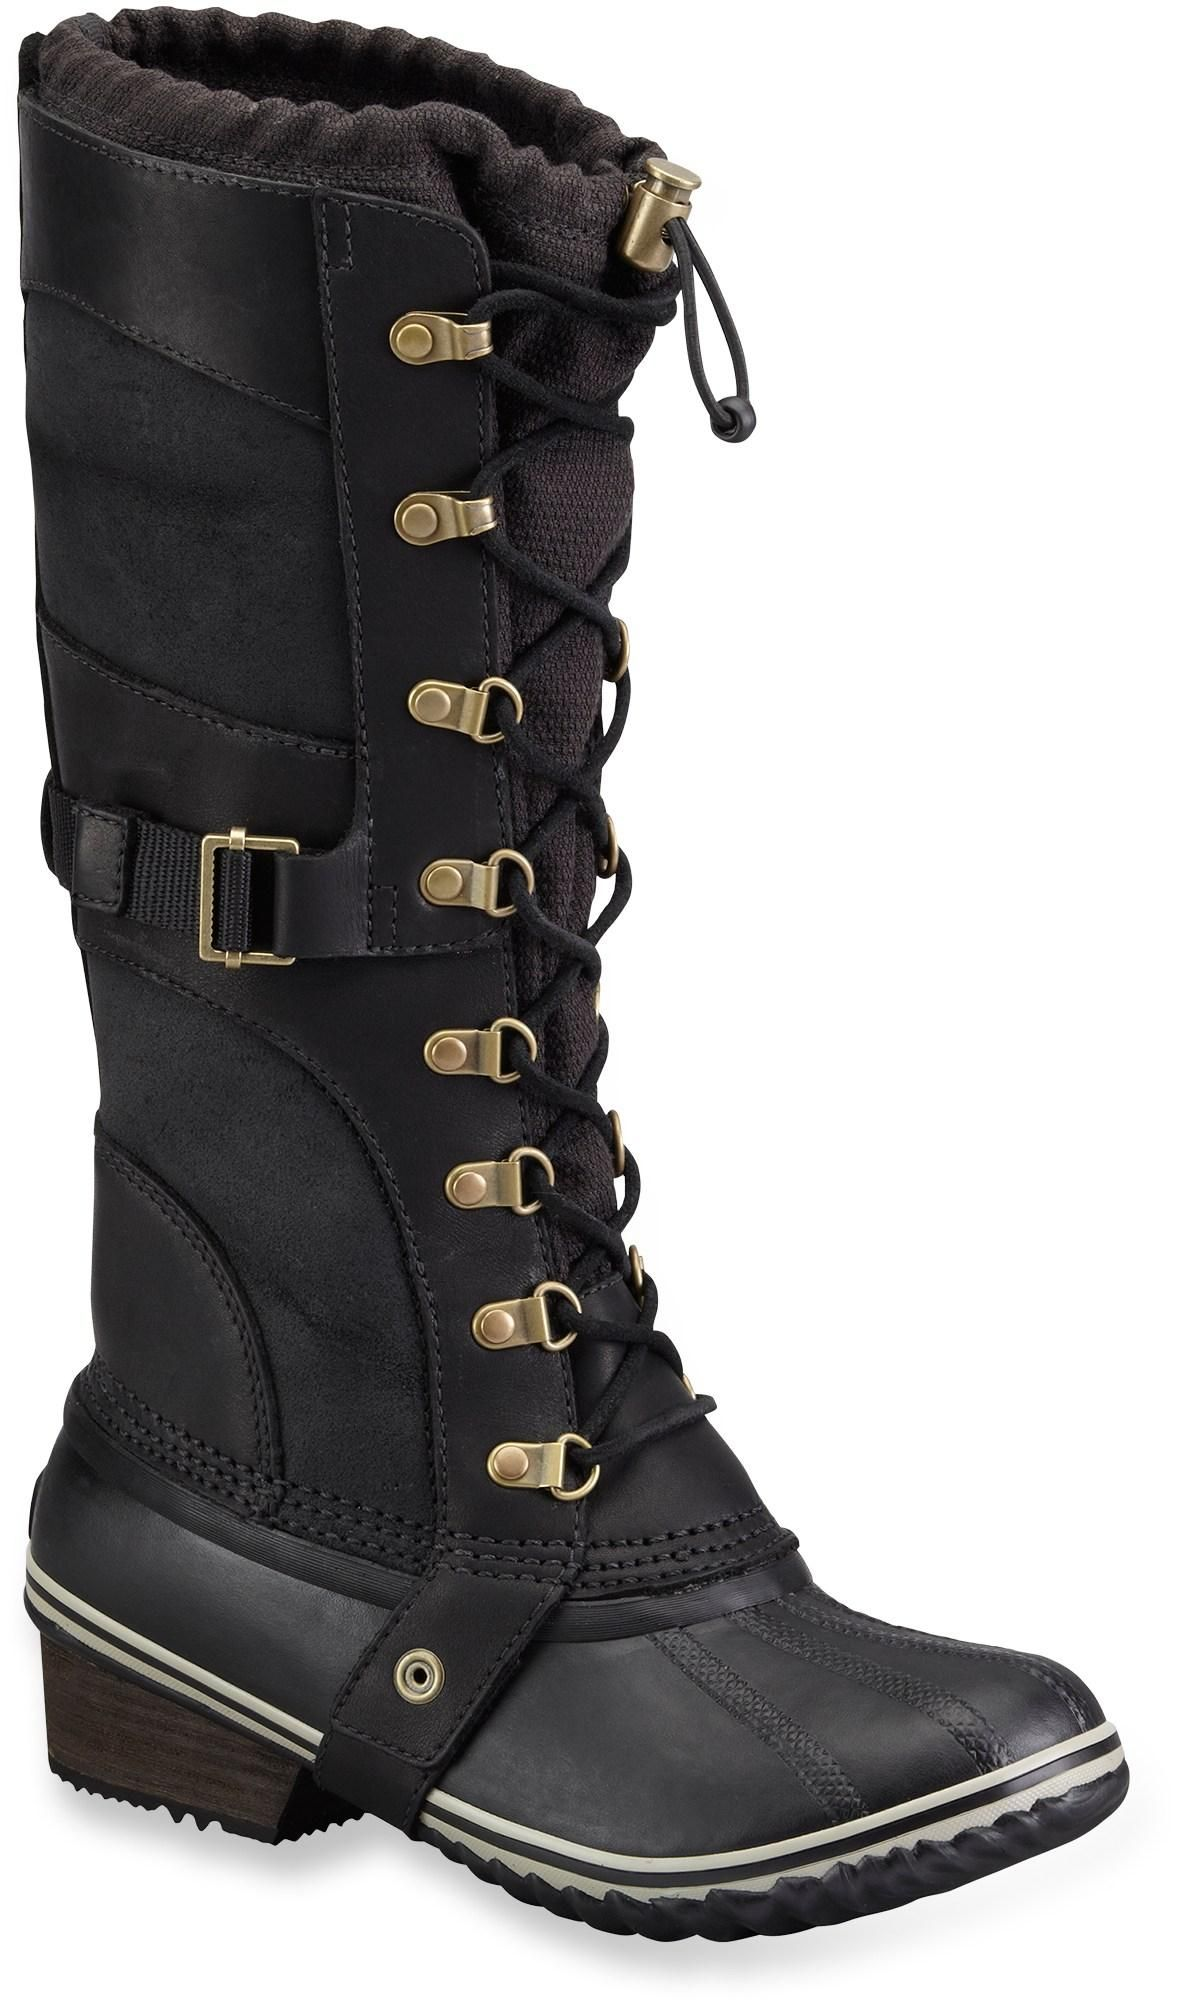 Sorel Conquest Carly Winter Boots Women S Rei Co Op Winter Boots Women Sorel Boots Womens Boots